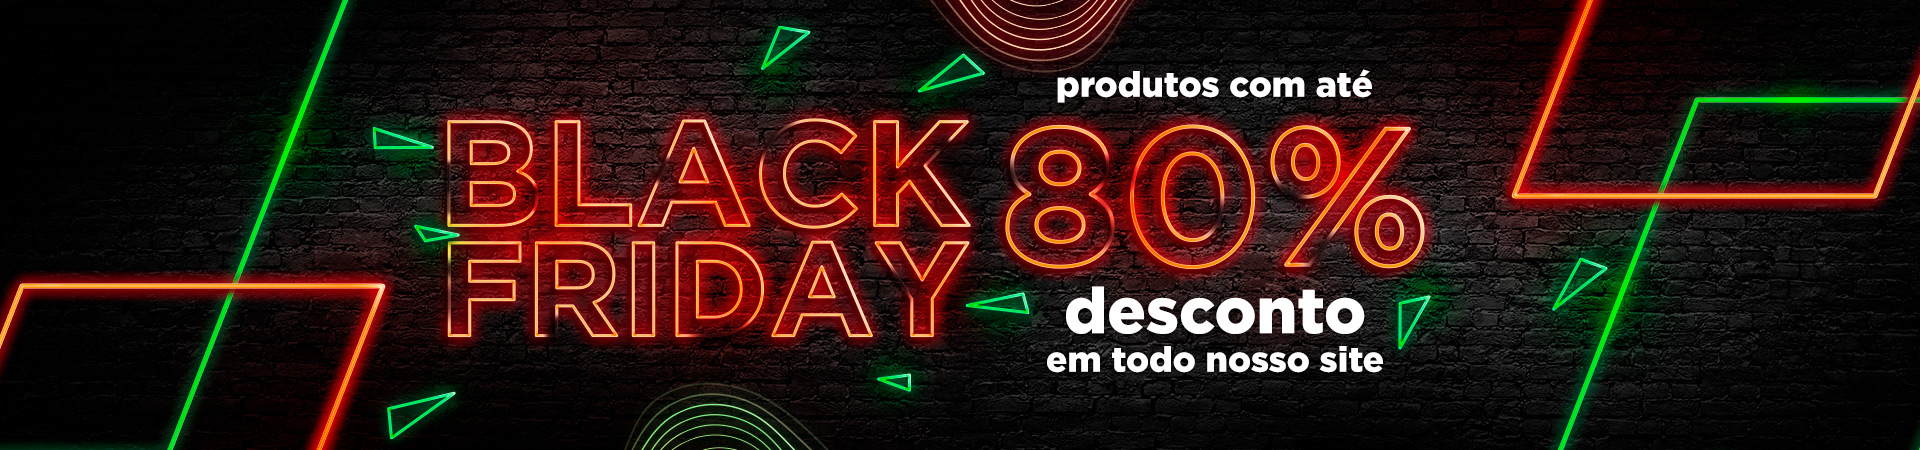 banners-BLACK-FRIDAY-80